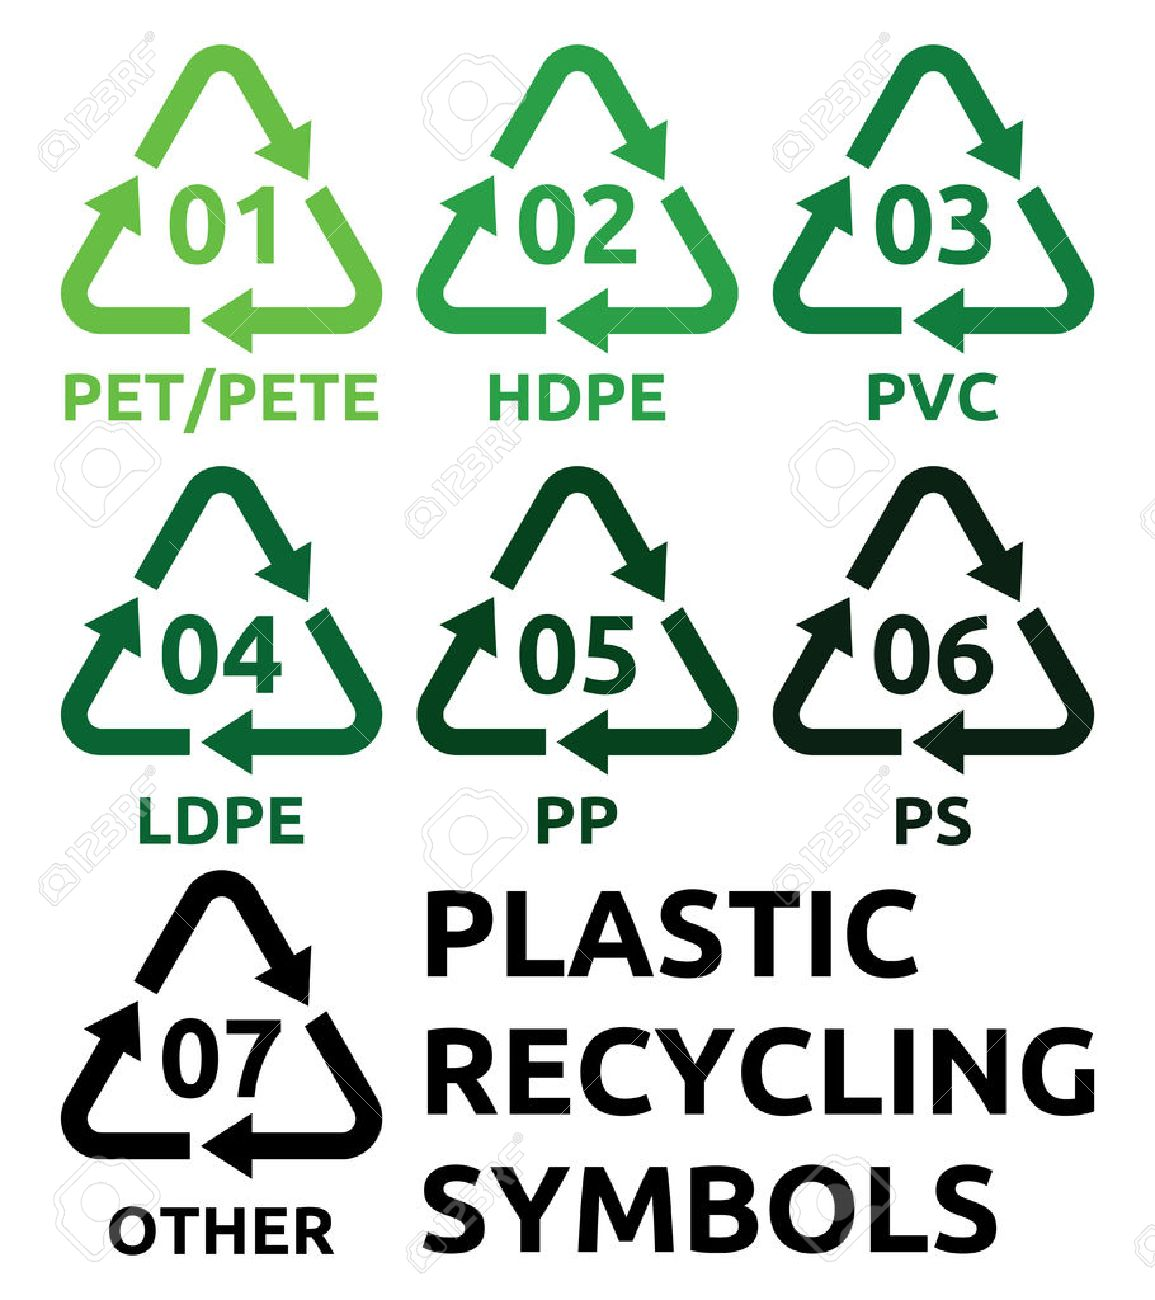 Recycling symbols for plastic image collections symbol and sign plastic recycling symbols royalty free cliparts vectors and plastic recycling symbols stock vector 22362996 buycottarizona buycottarizona